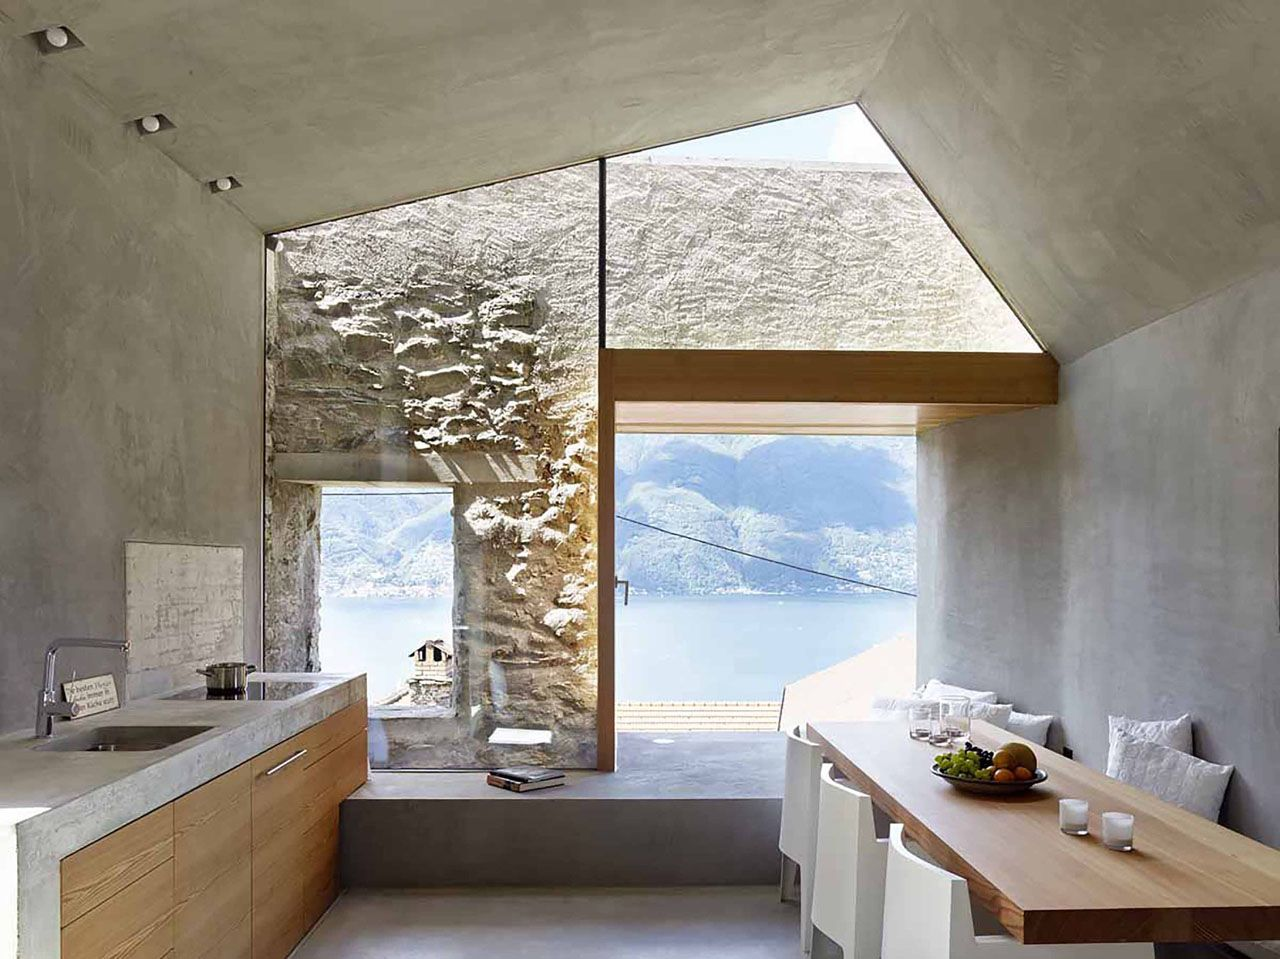 Modern renovation of an old stone house scaiano caviano for Modern stone houses architecture